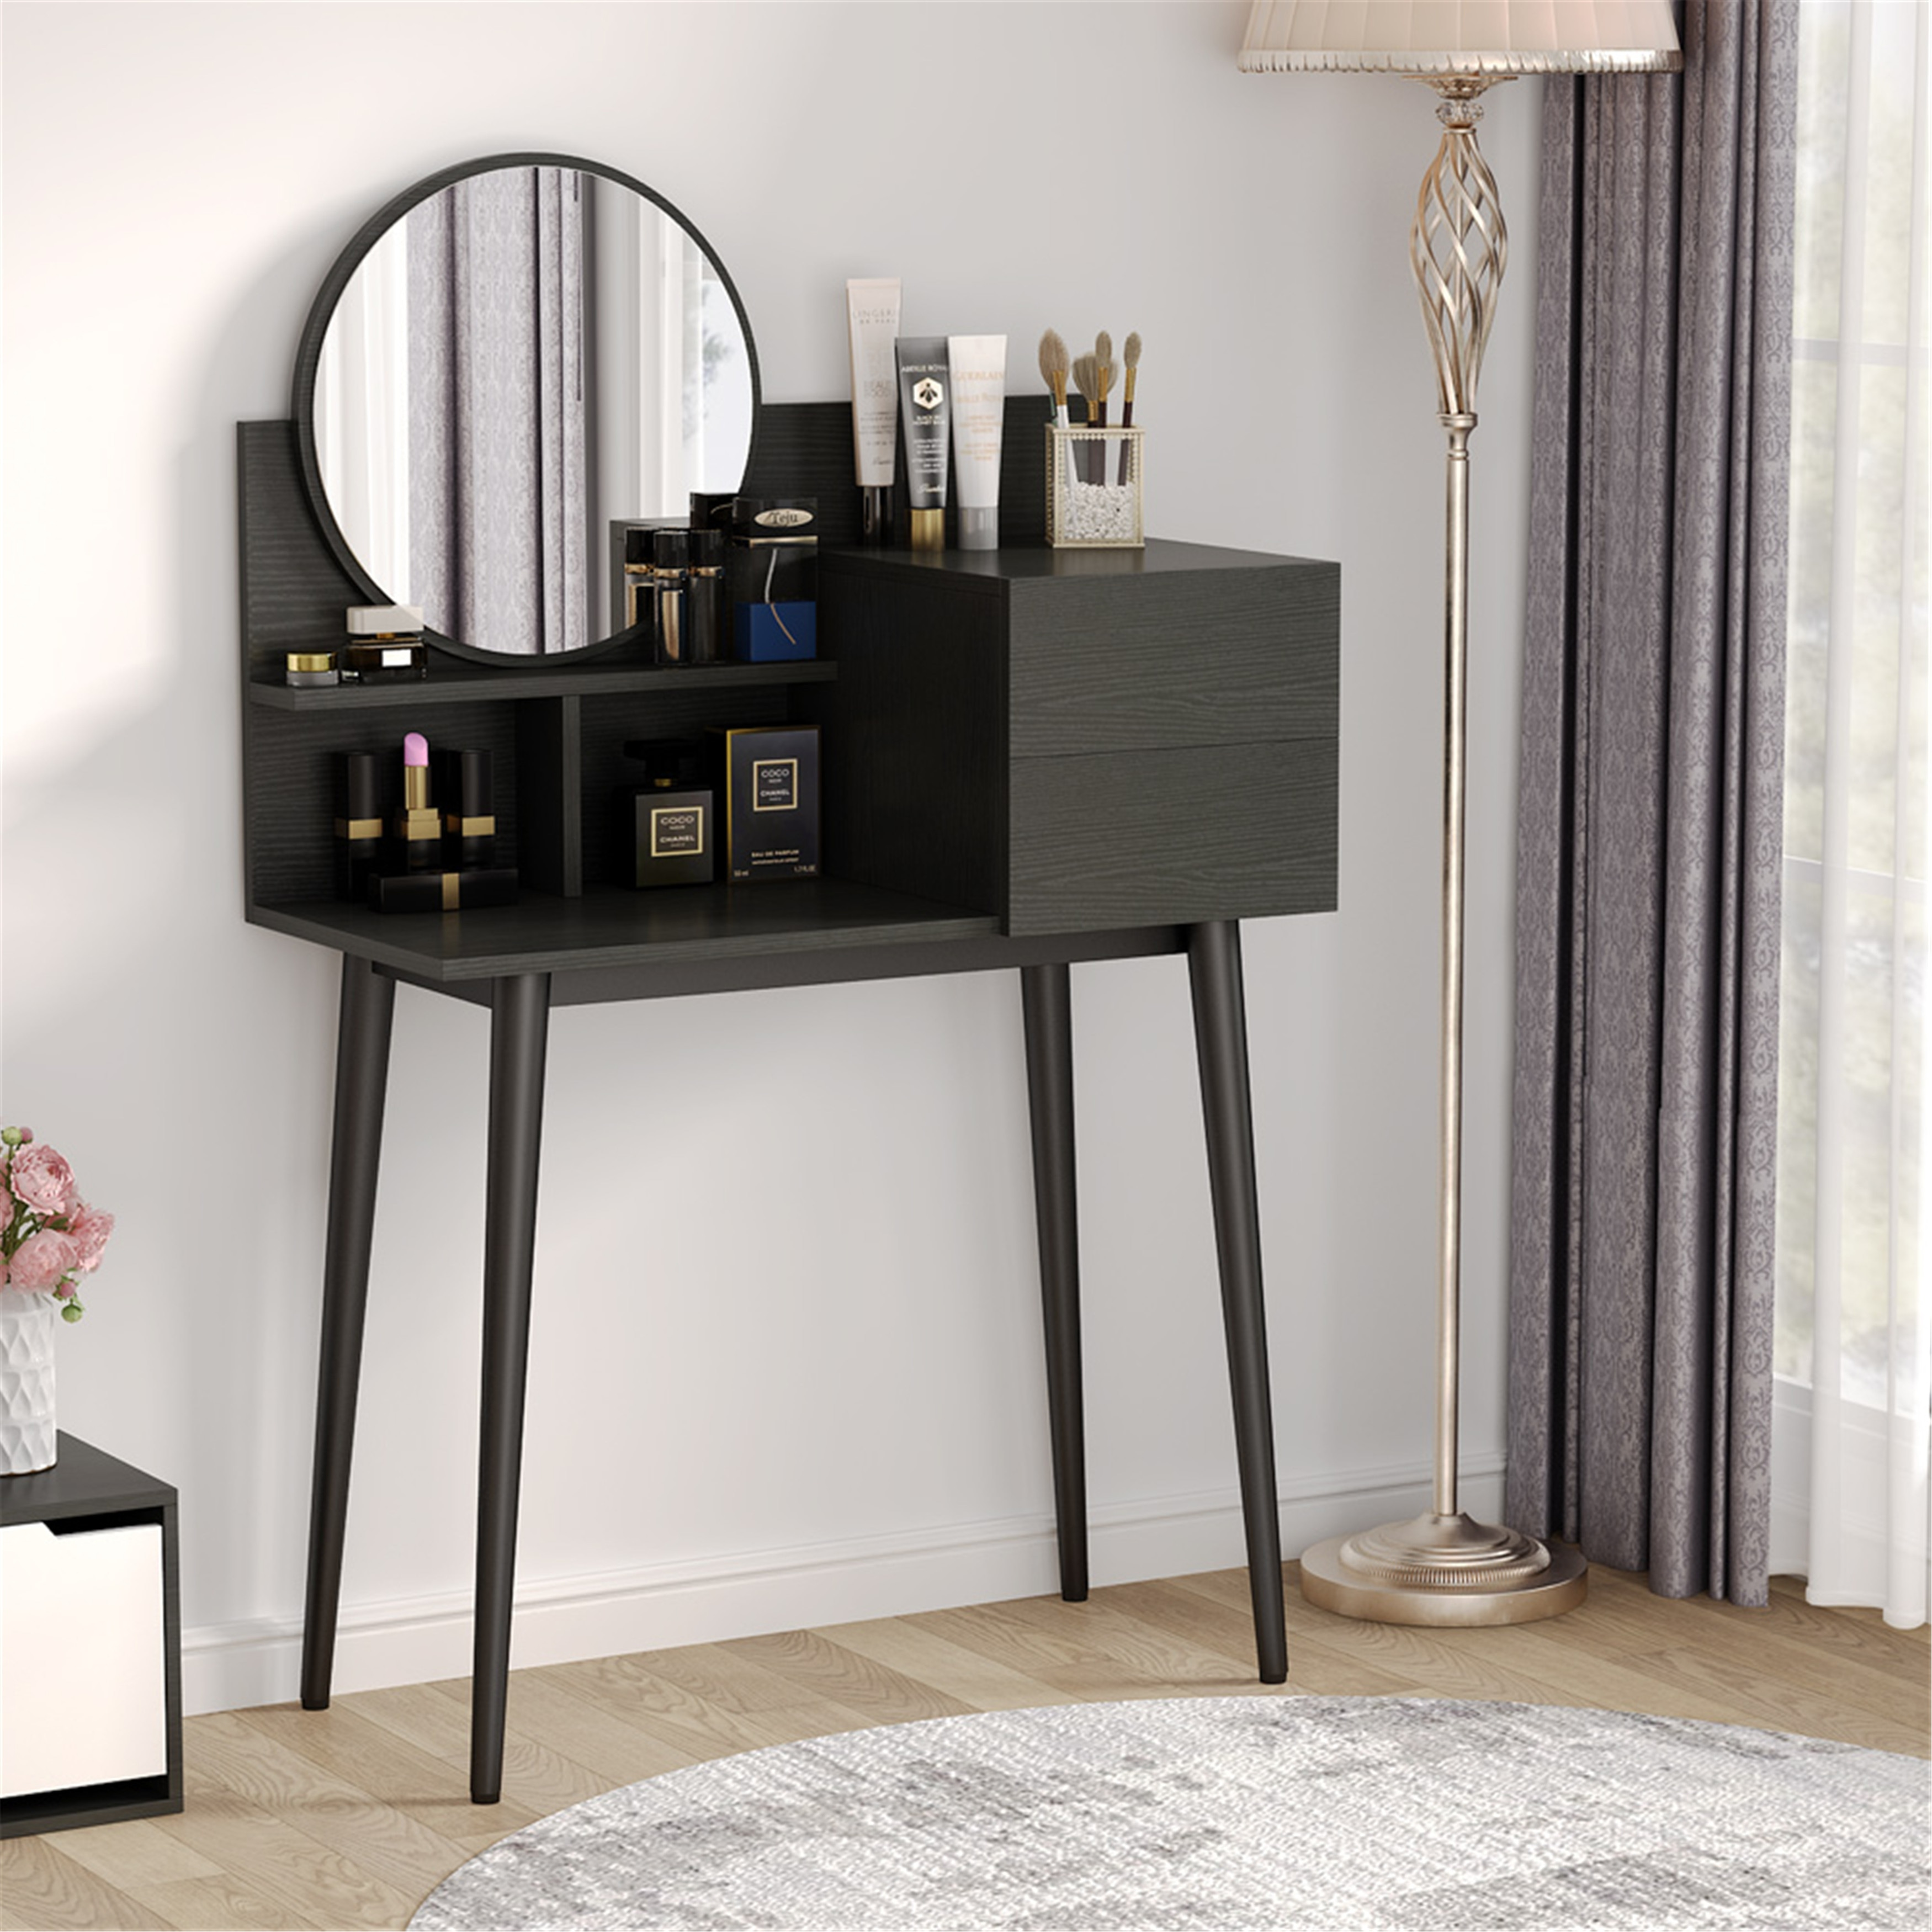 Small Vanity Table Corner Makeup Table With Round Mirror Overstock 32188632